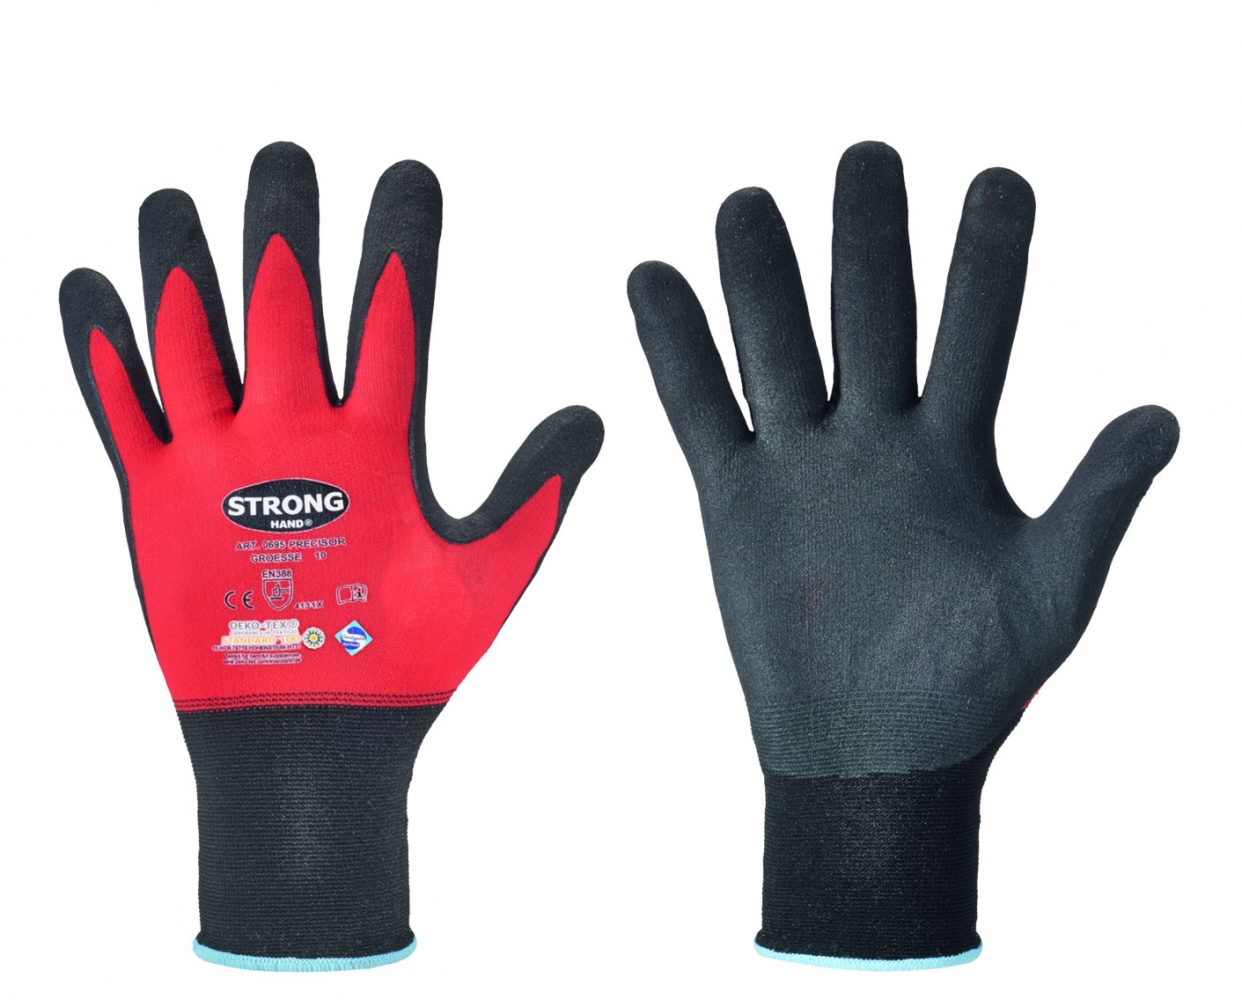 pics/Feldtmann 2016/Handschutz/google/stronghand-0695-precisor-nitrile-safety-gloves-red-sanitized2.jpg